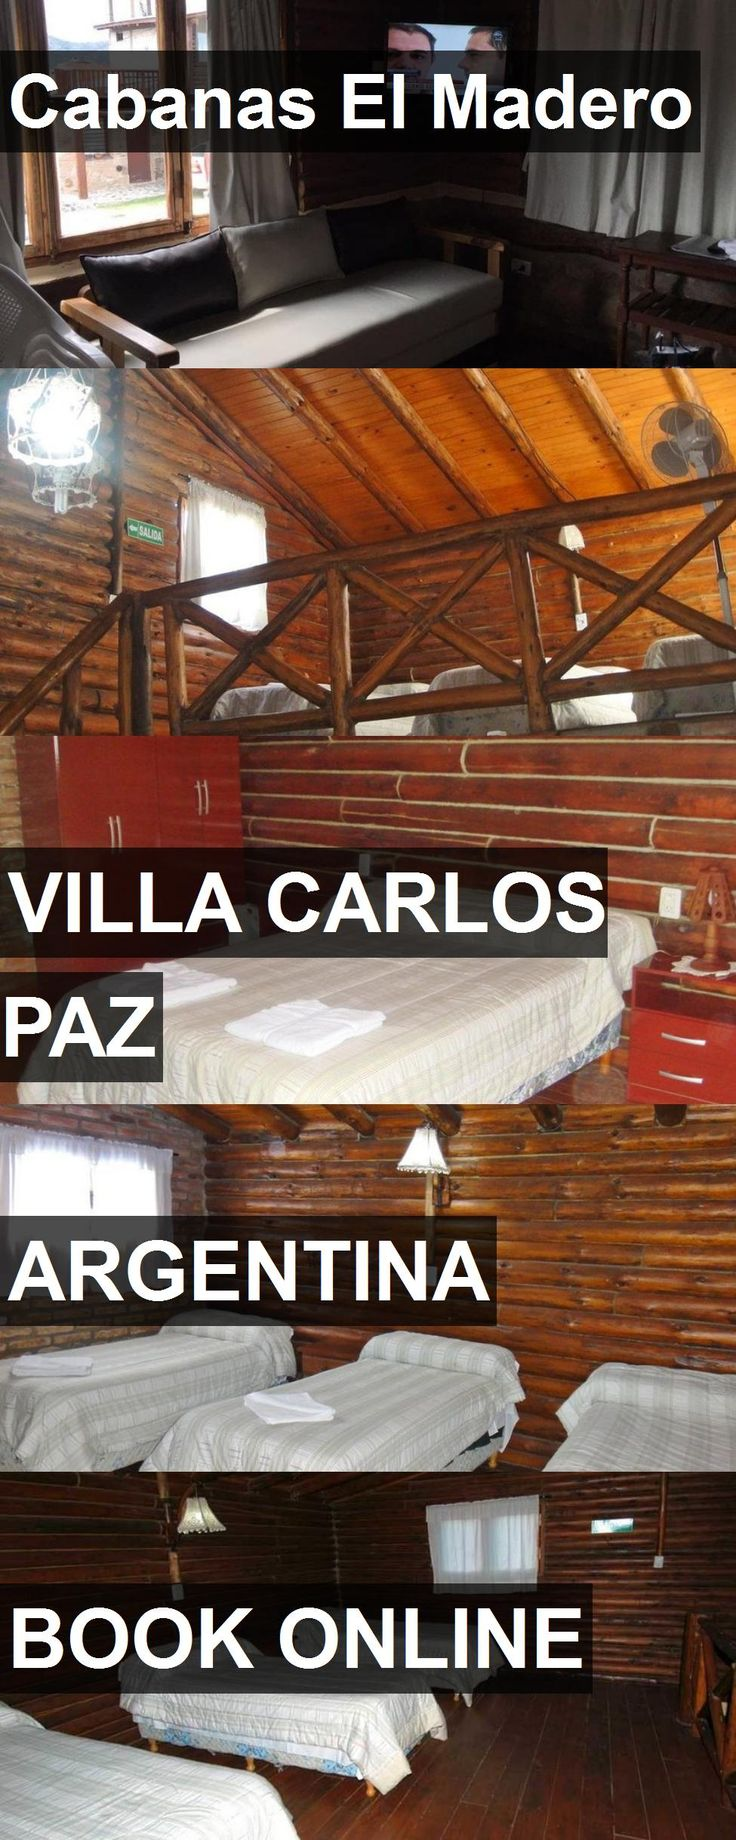 Hotel Cabanas El Madero in Villa Carlos Paz, Argentina. For more information, photos, reviews and best prices please follow the link. #Argentina #VillaCarlosPaz #travel #vacation #hotel